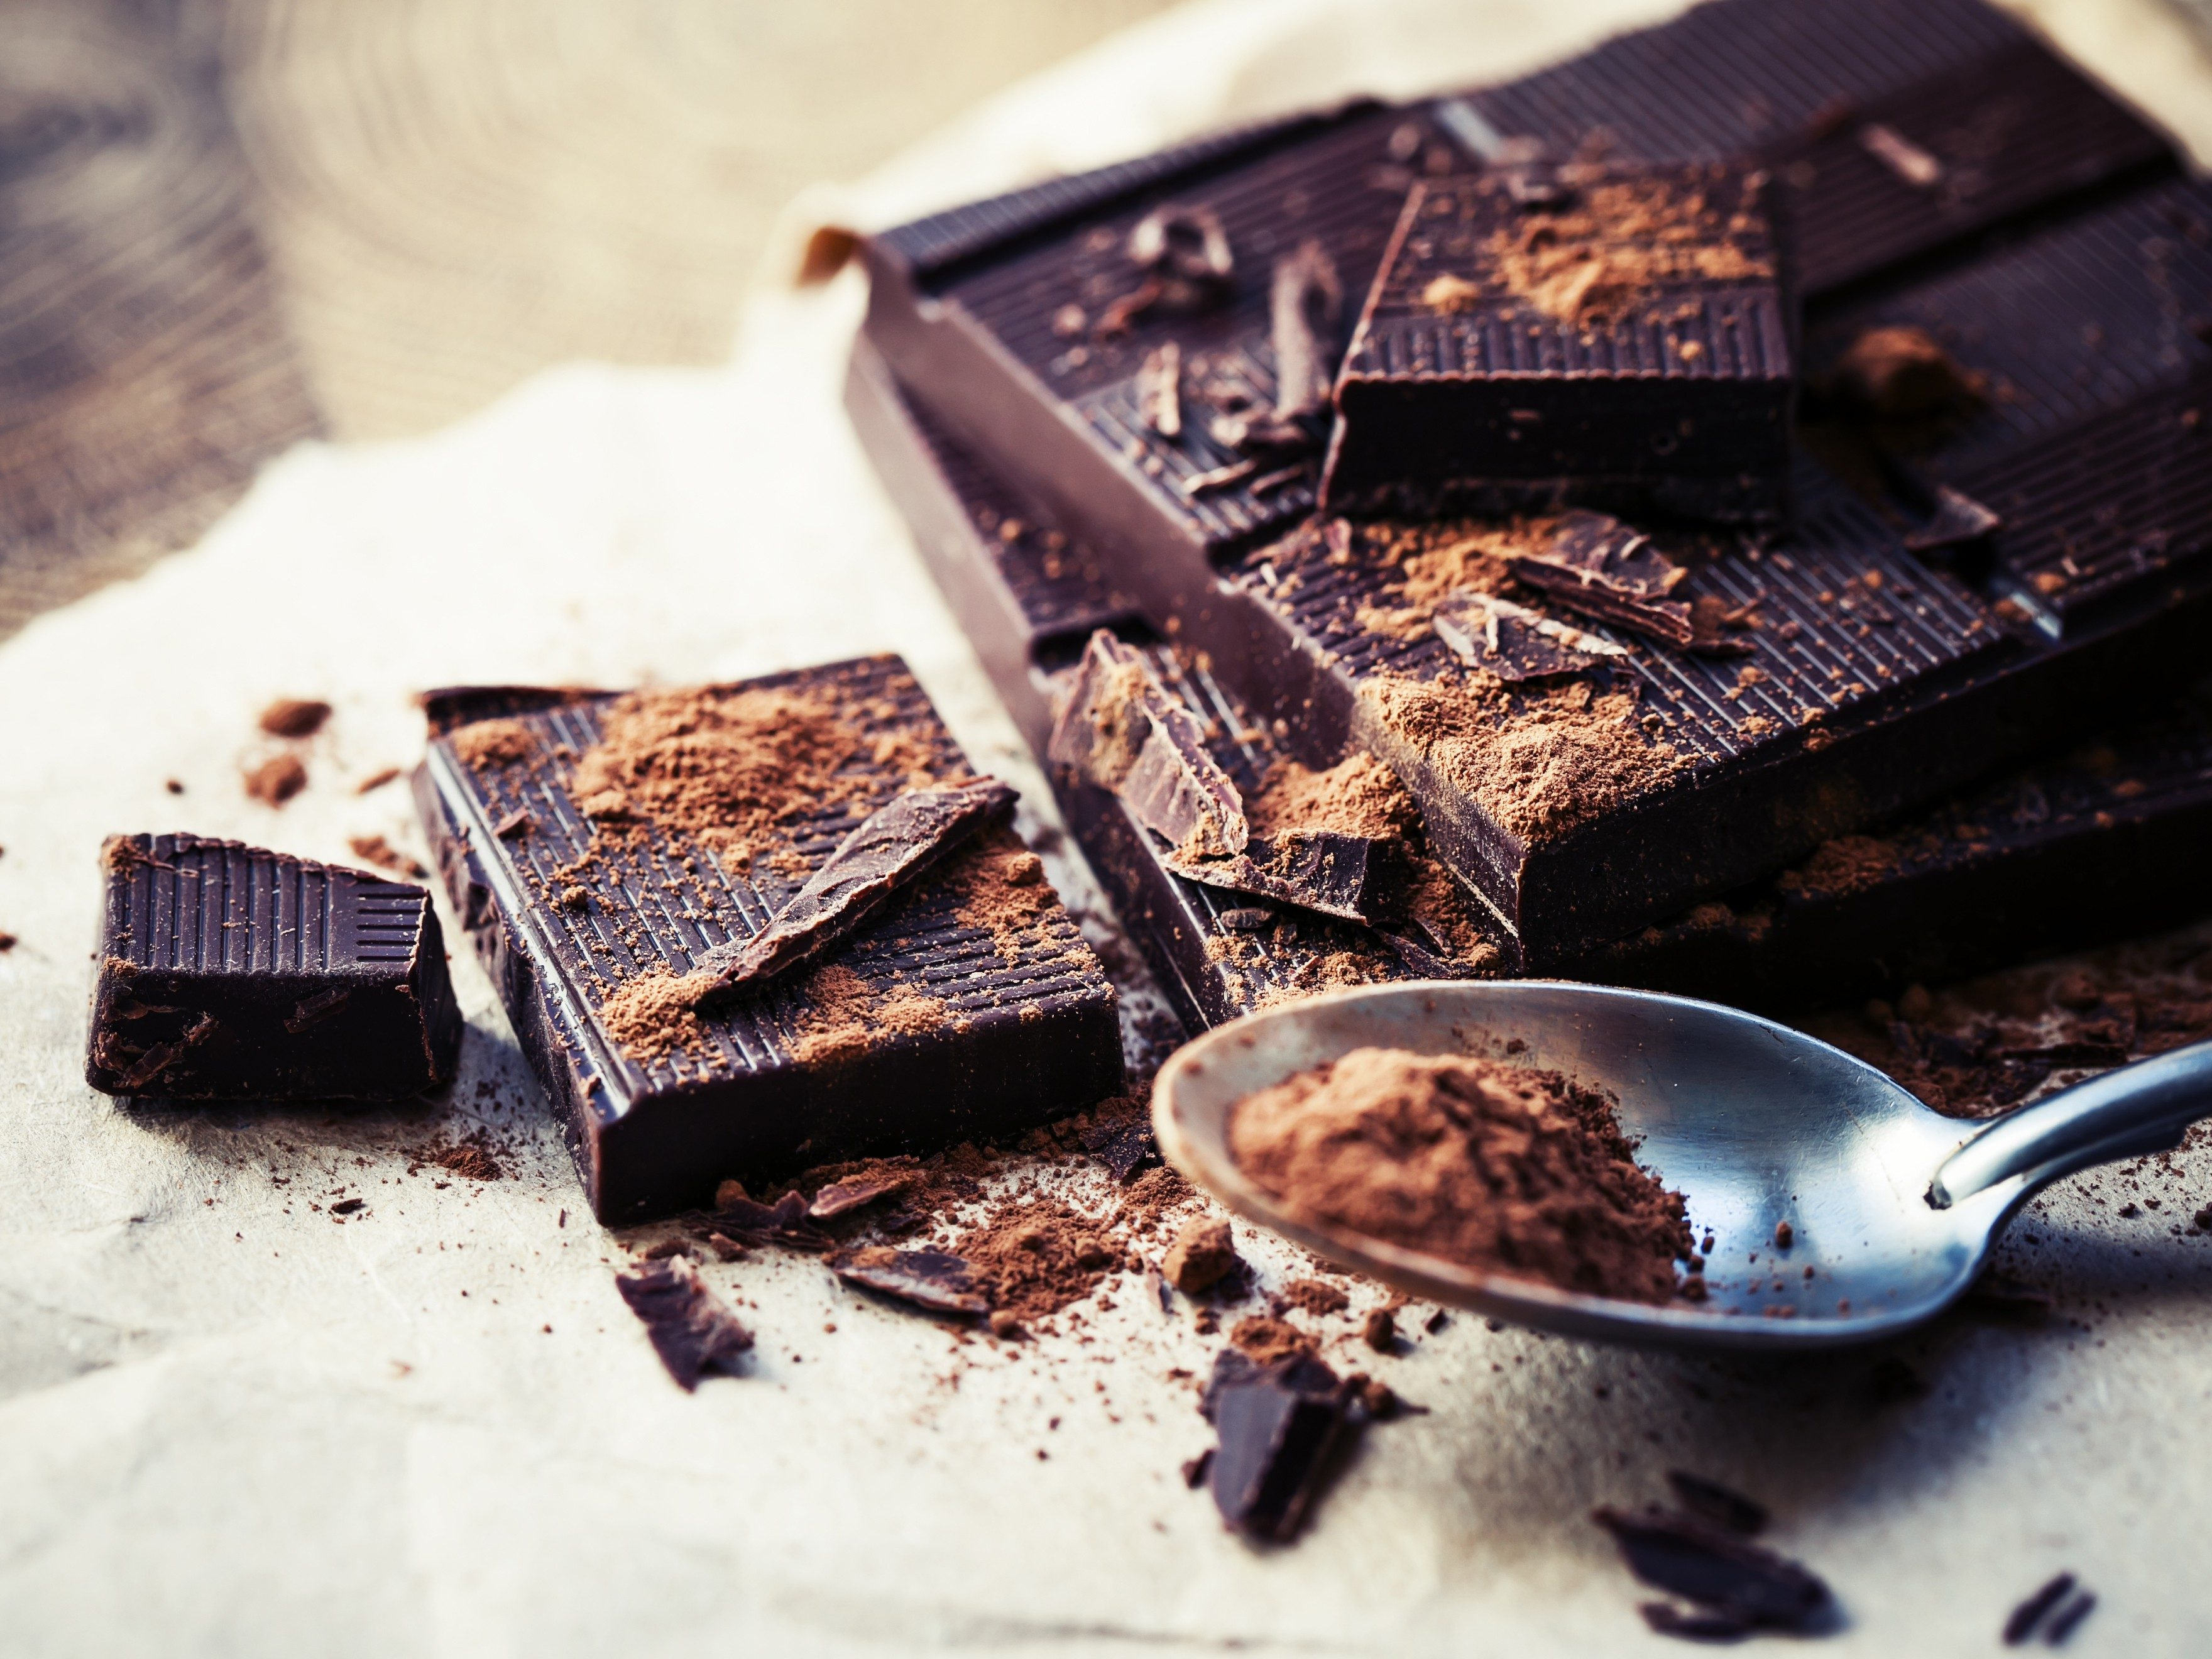 8. Eat dark chocolate